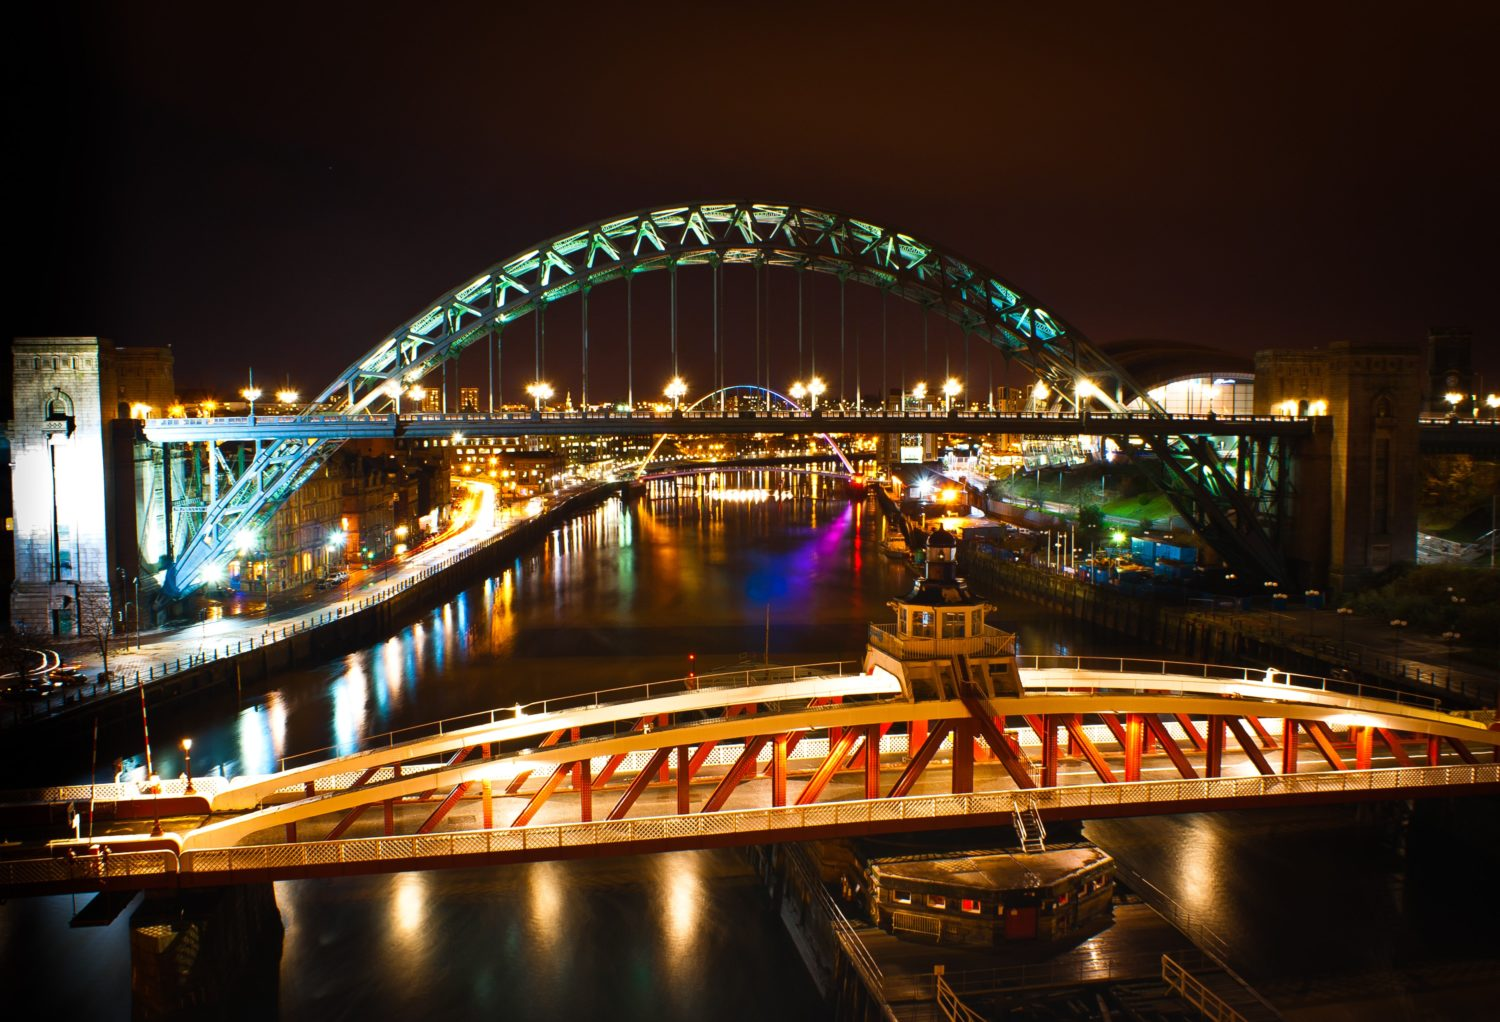 Fun facts about the North East